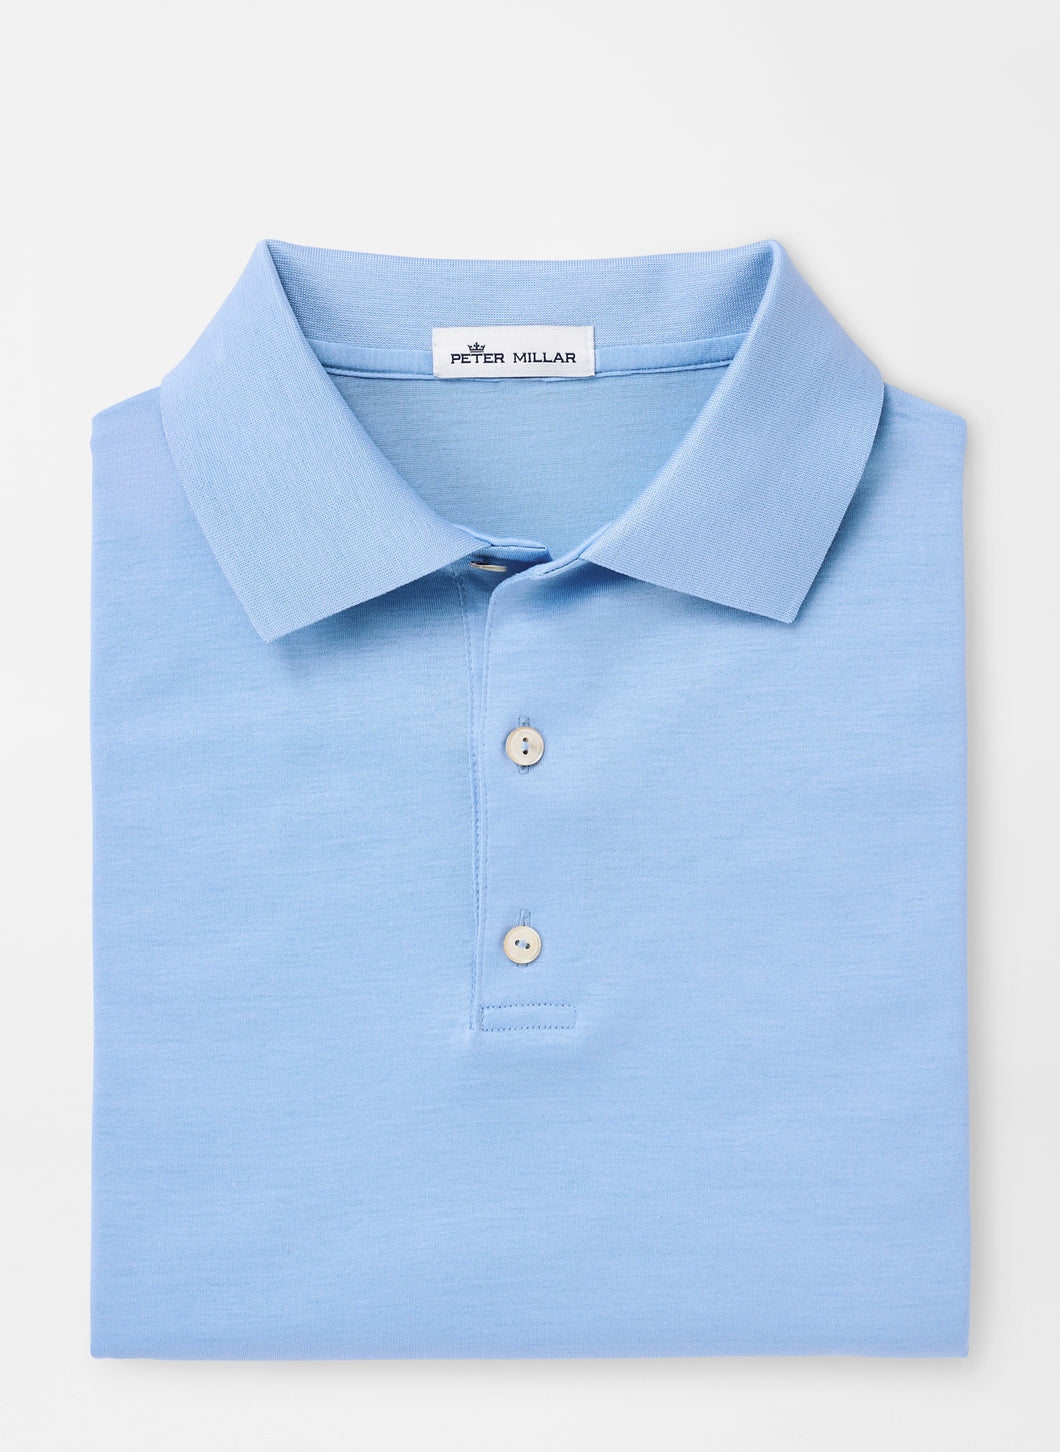 Peter Millar Solid Mercerized Cotton Polo in Cottage Blue